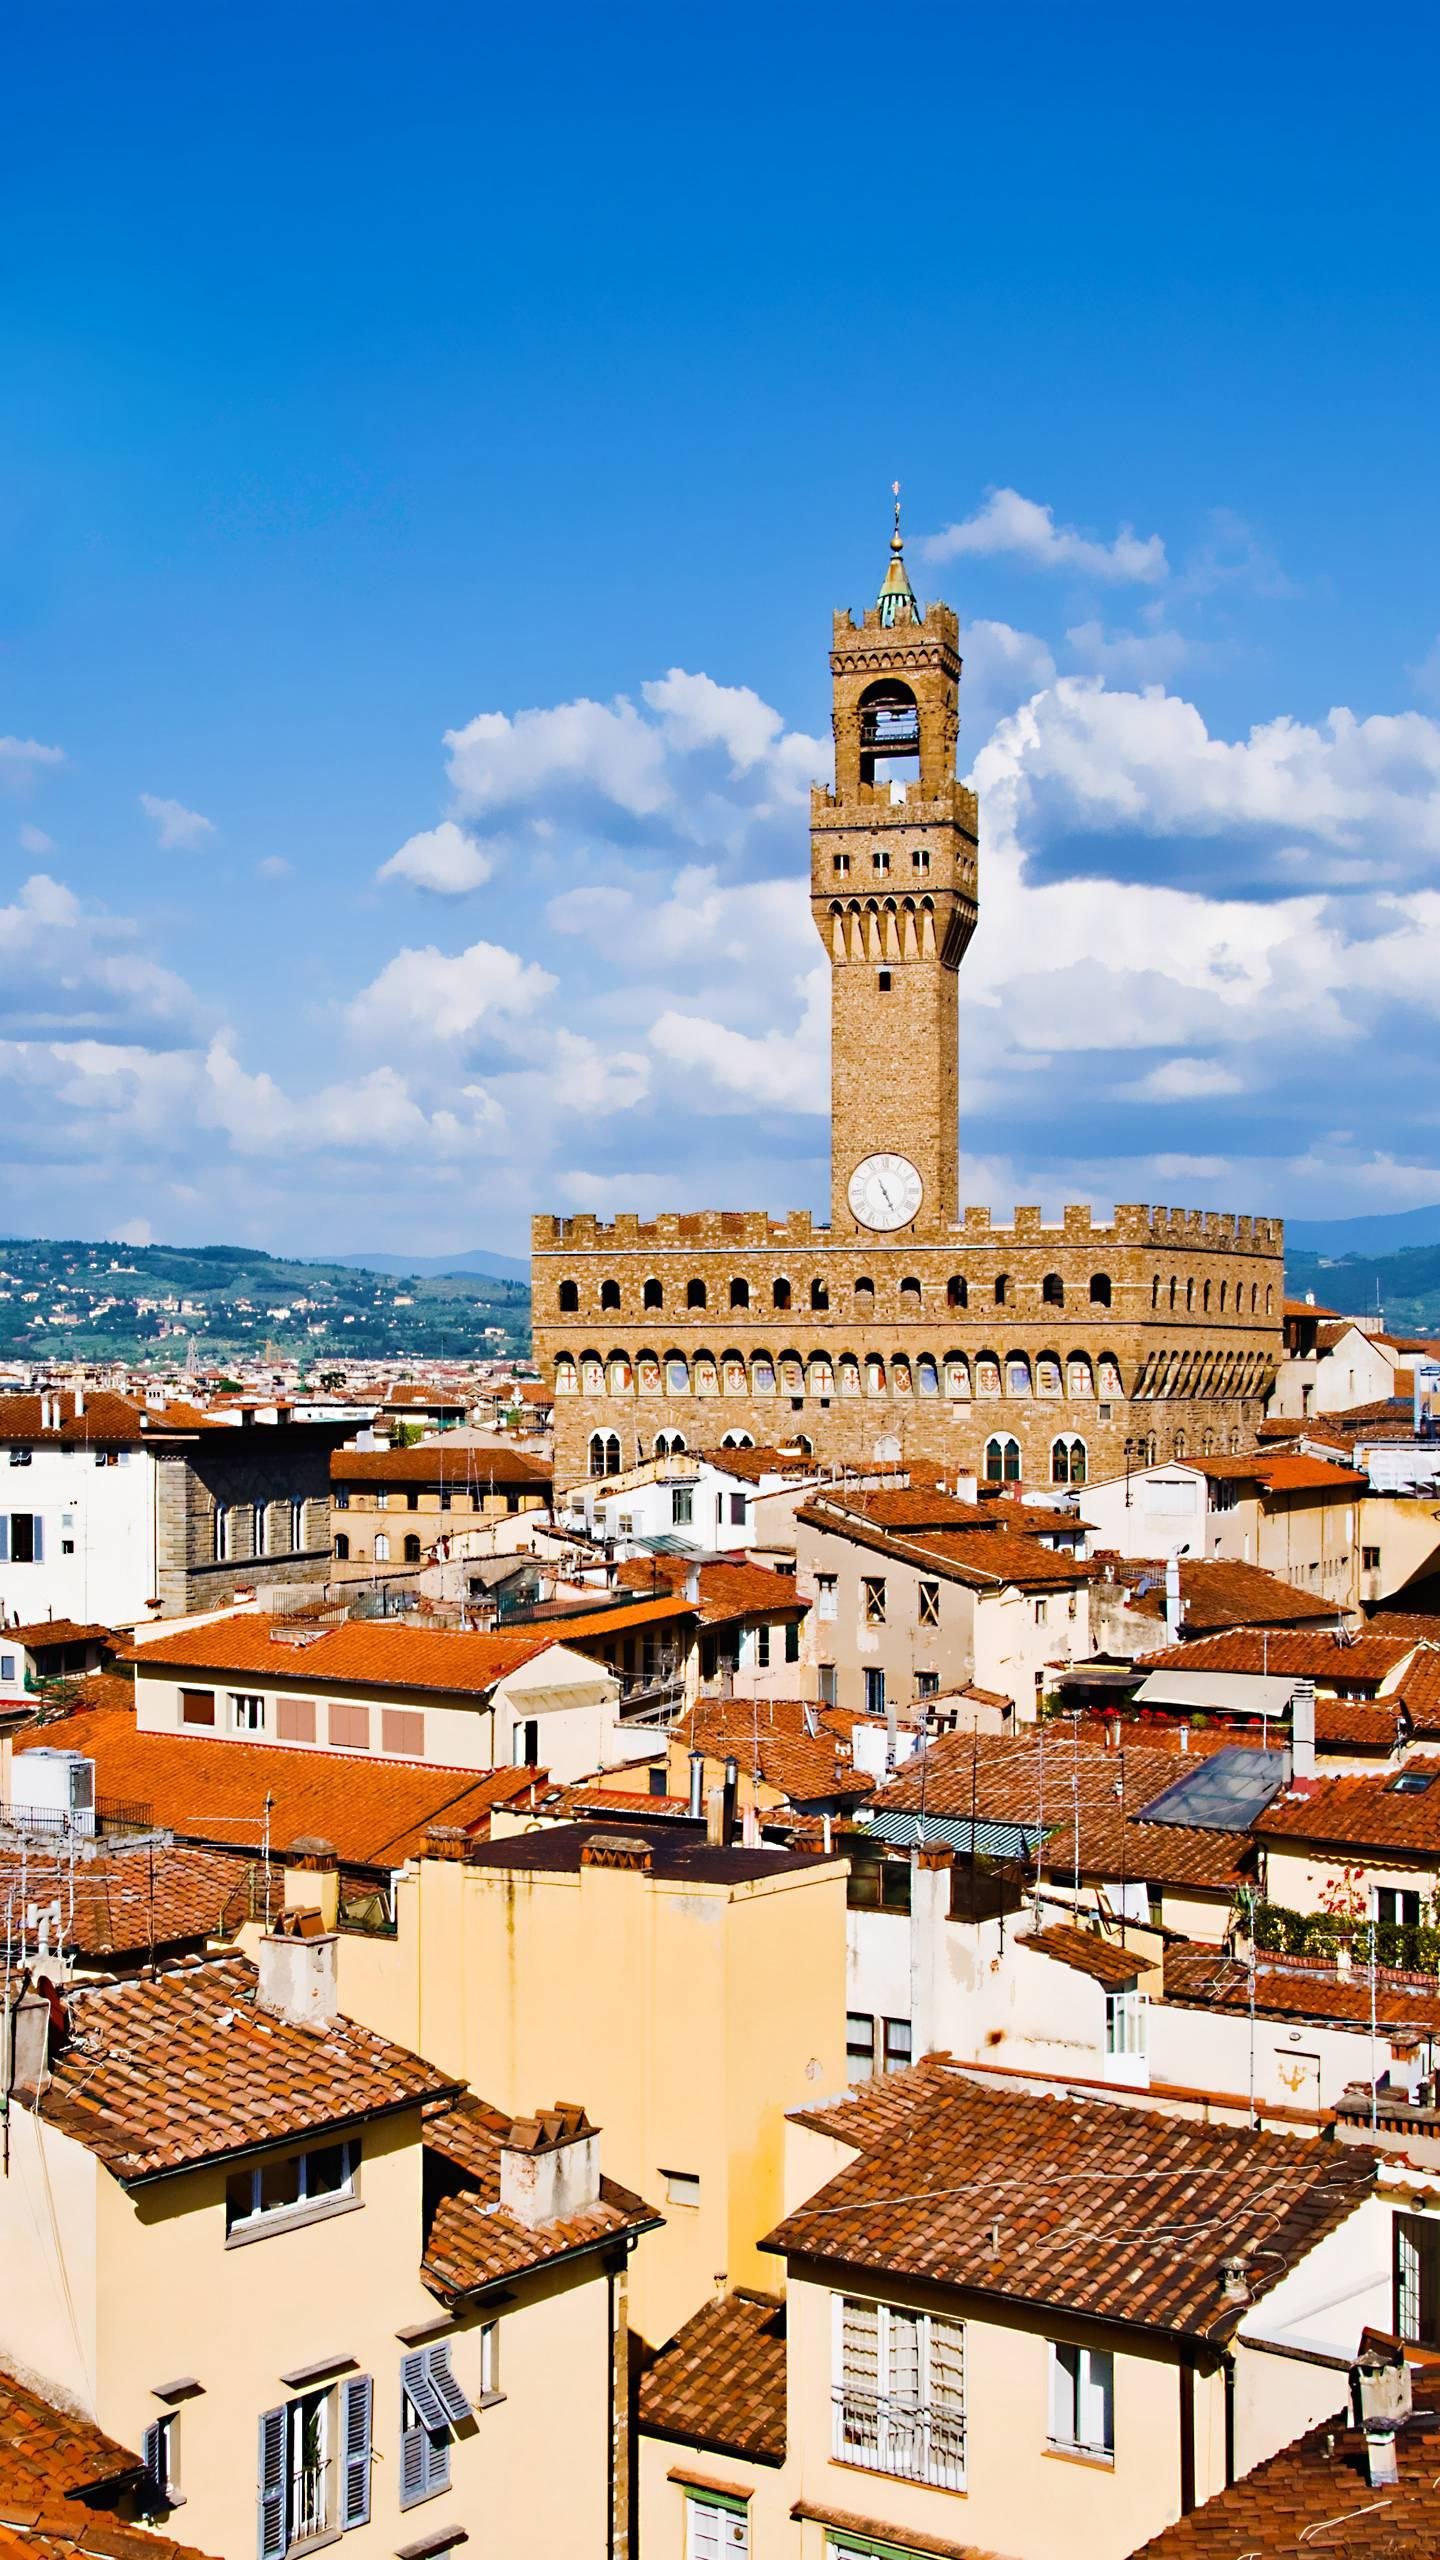 Italy - Florence. The urban area still maintains the pattern of the Roman period, and many medieval buildings are world-famous cultural and tourist destinations.